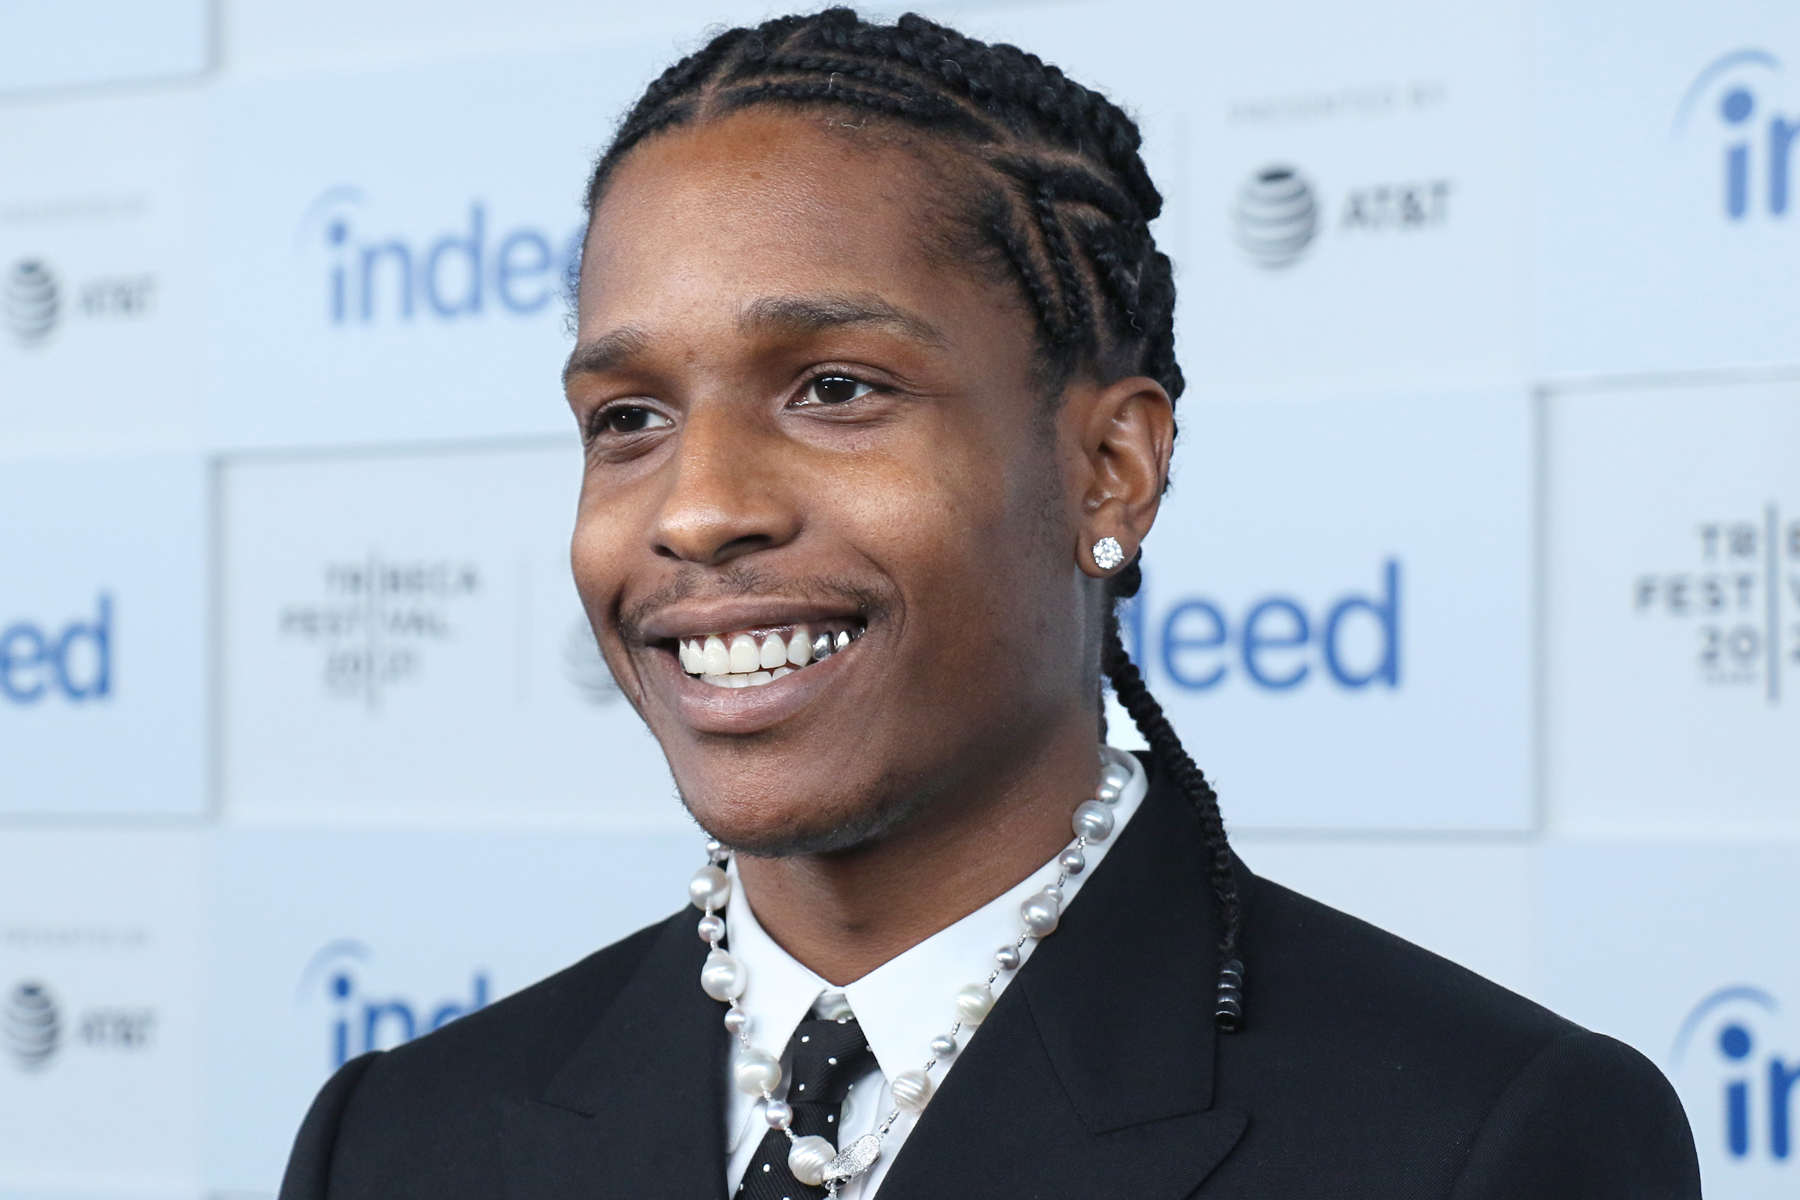 """NEW YORK, NEW YORK - JUNE 13: Rapper ASAP Rocky attends the """"Stockholm Syndrome"""" premiere during the 2021 Tribeca Festival at The Battery on June 13, 2021 in New York City. (Photo by Jim Spellman/Getty Images)"""